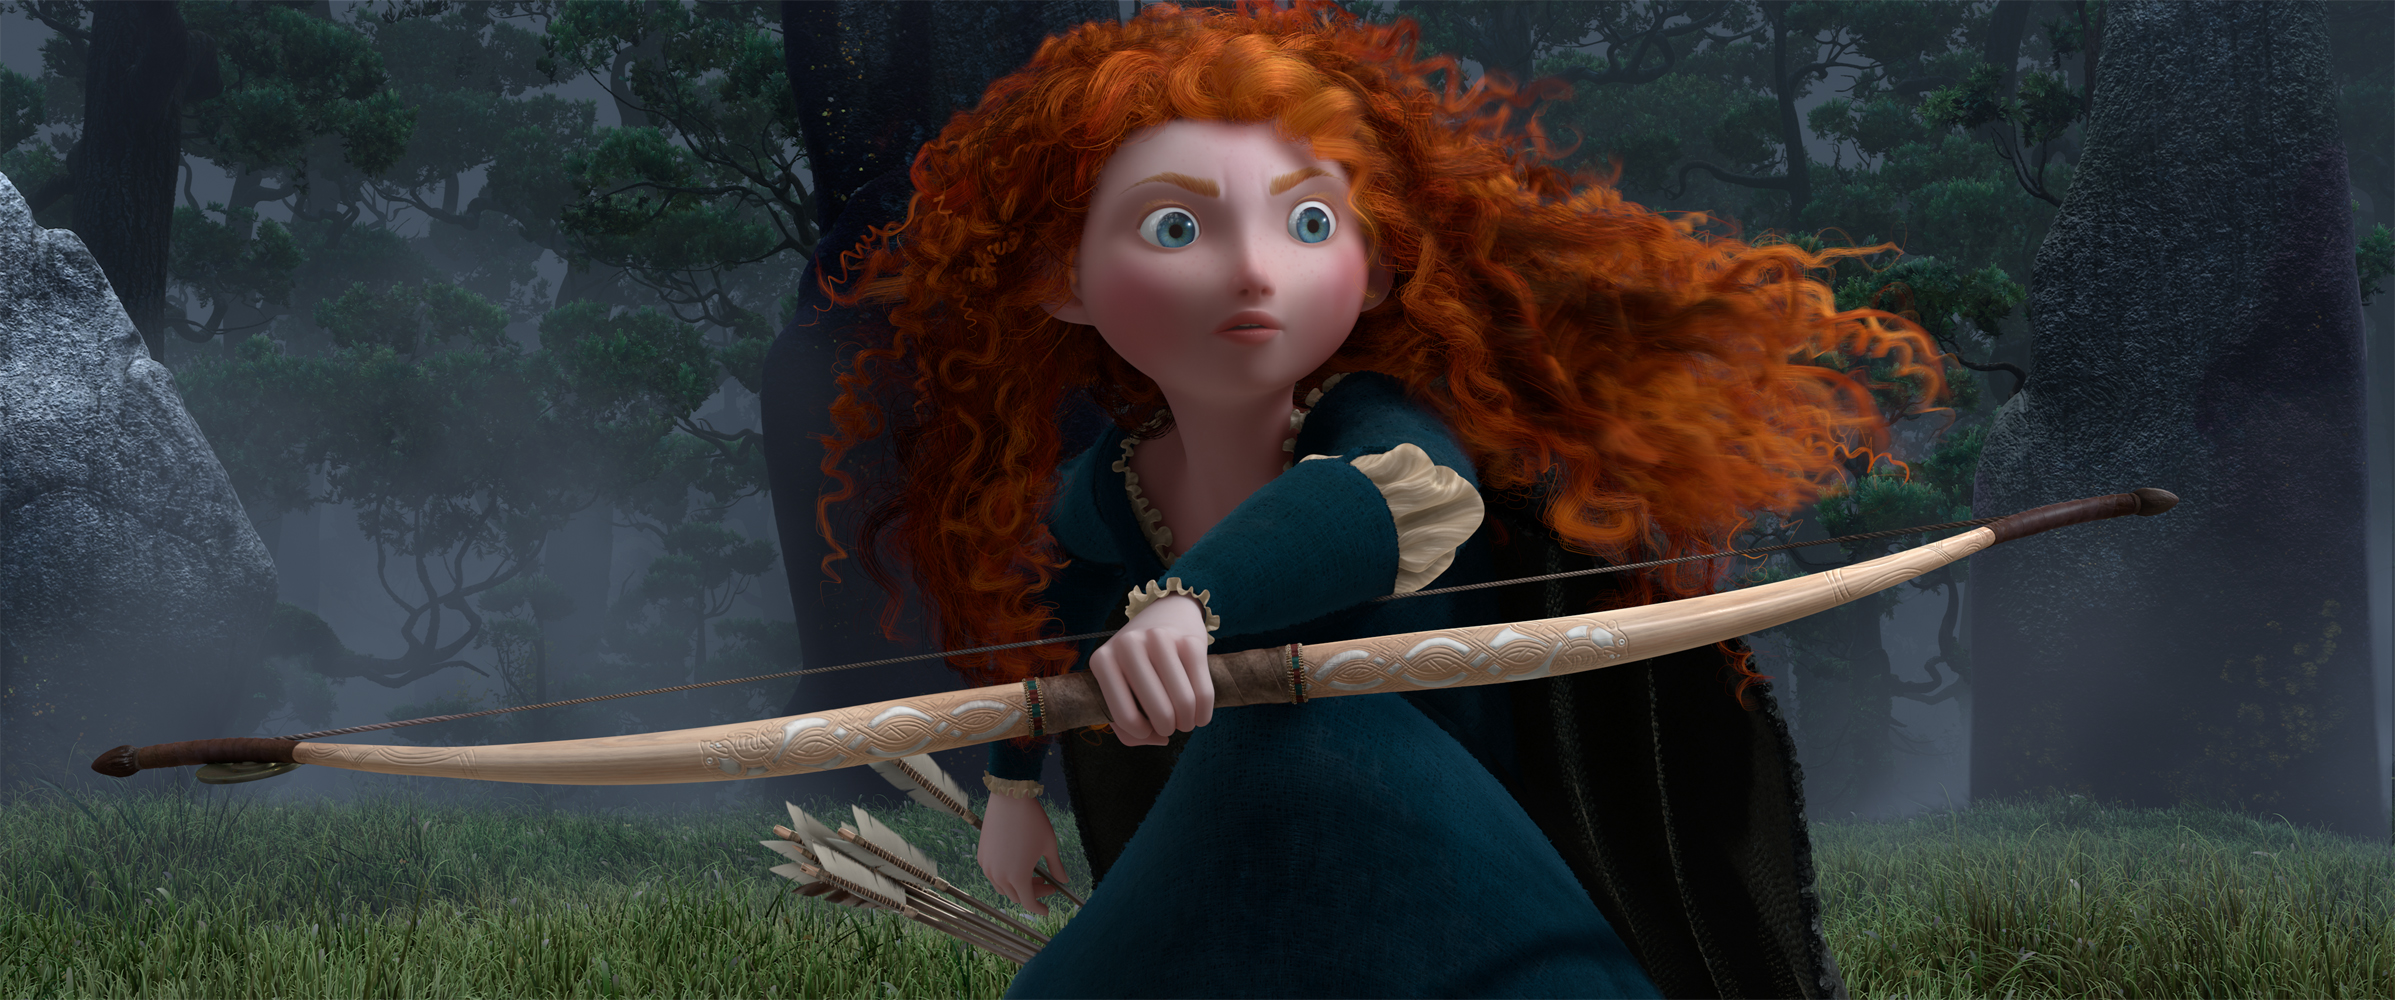 Discuss: 'Brave' Trailer Reactions